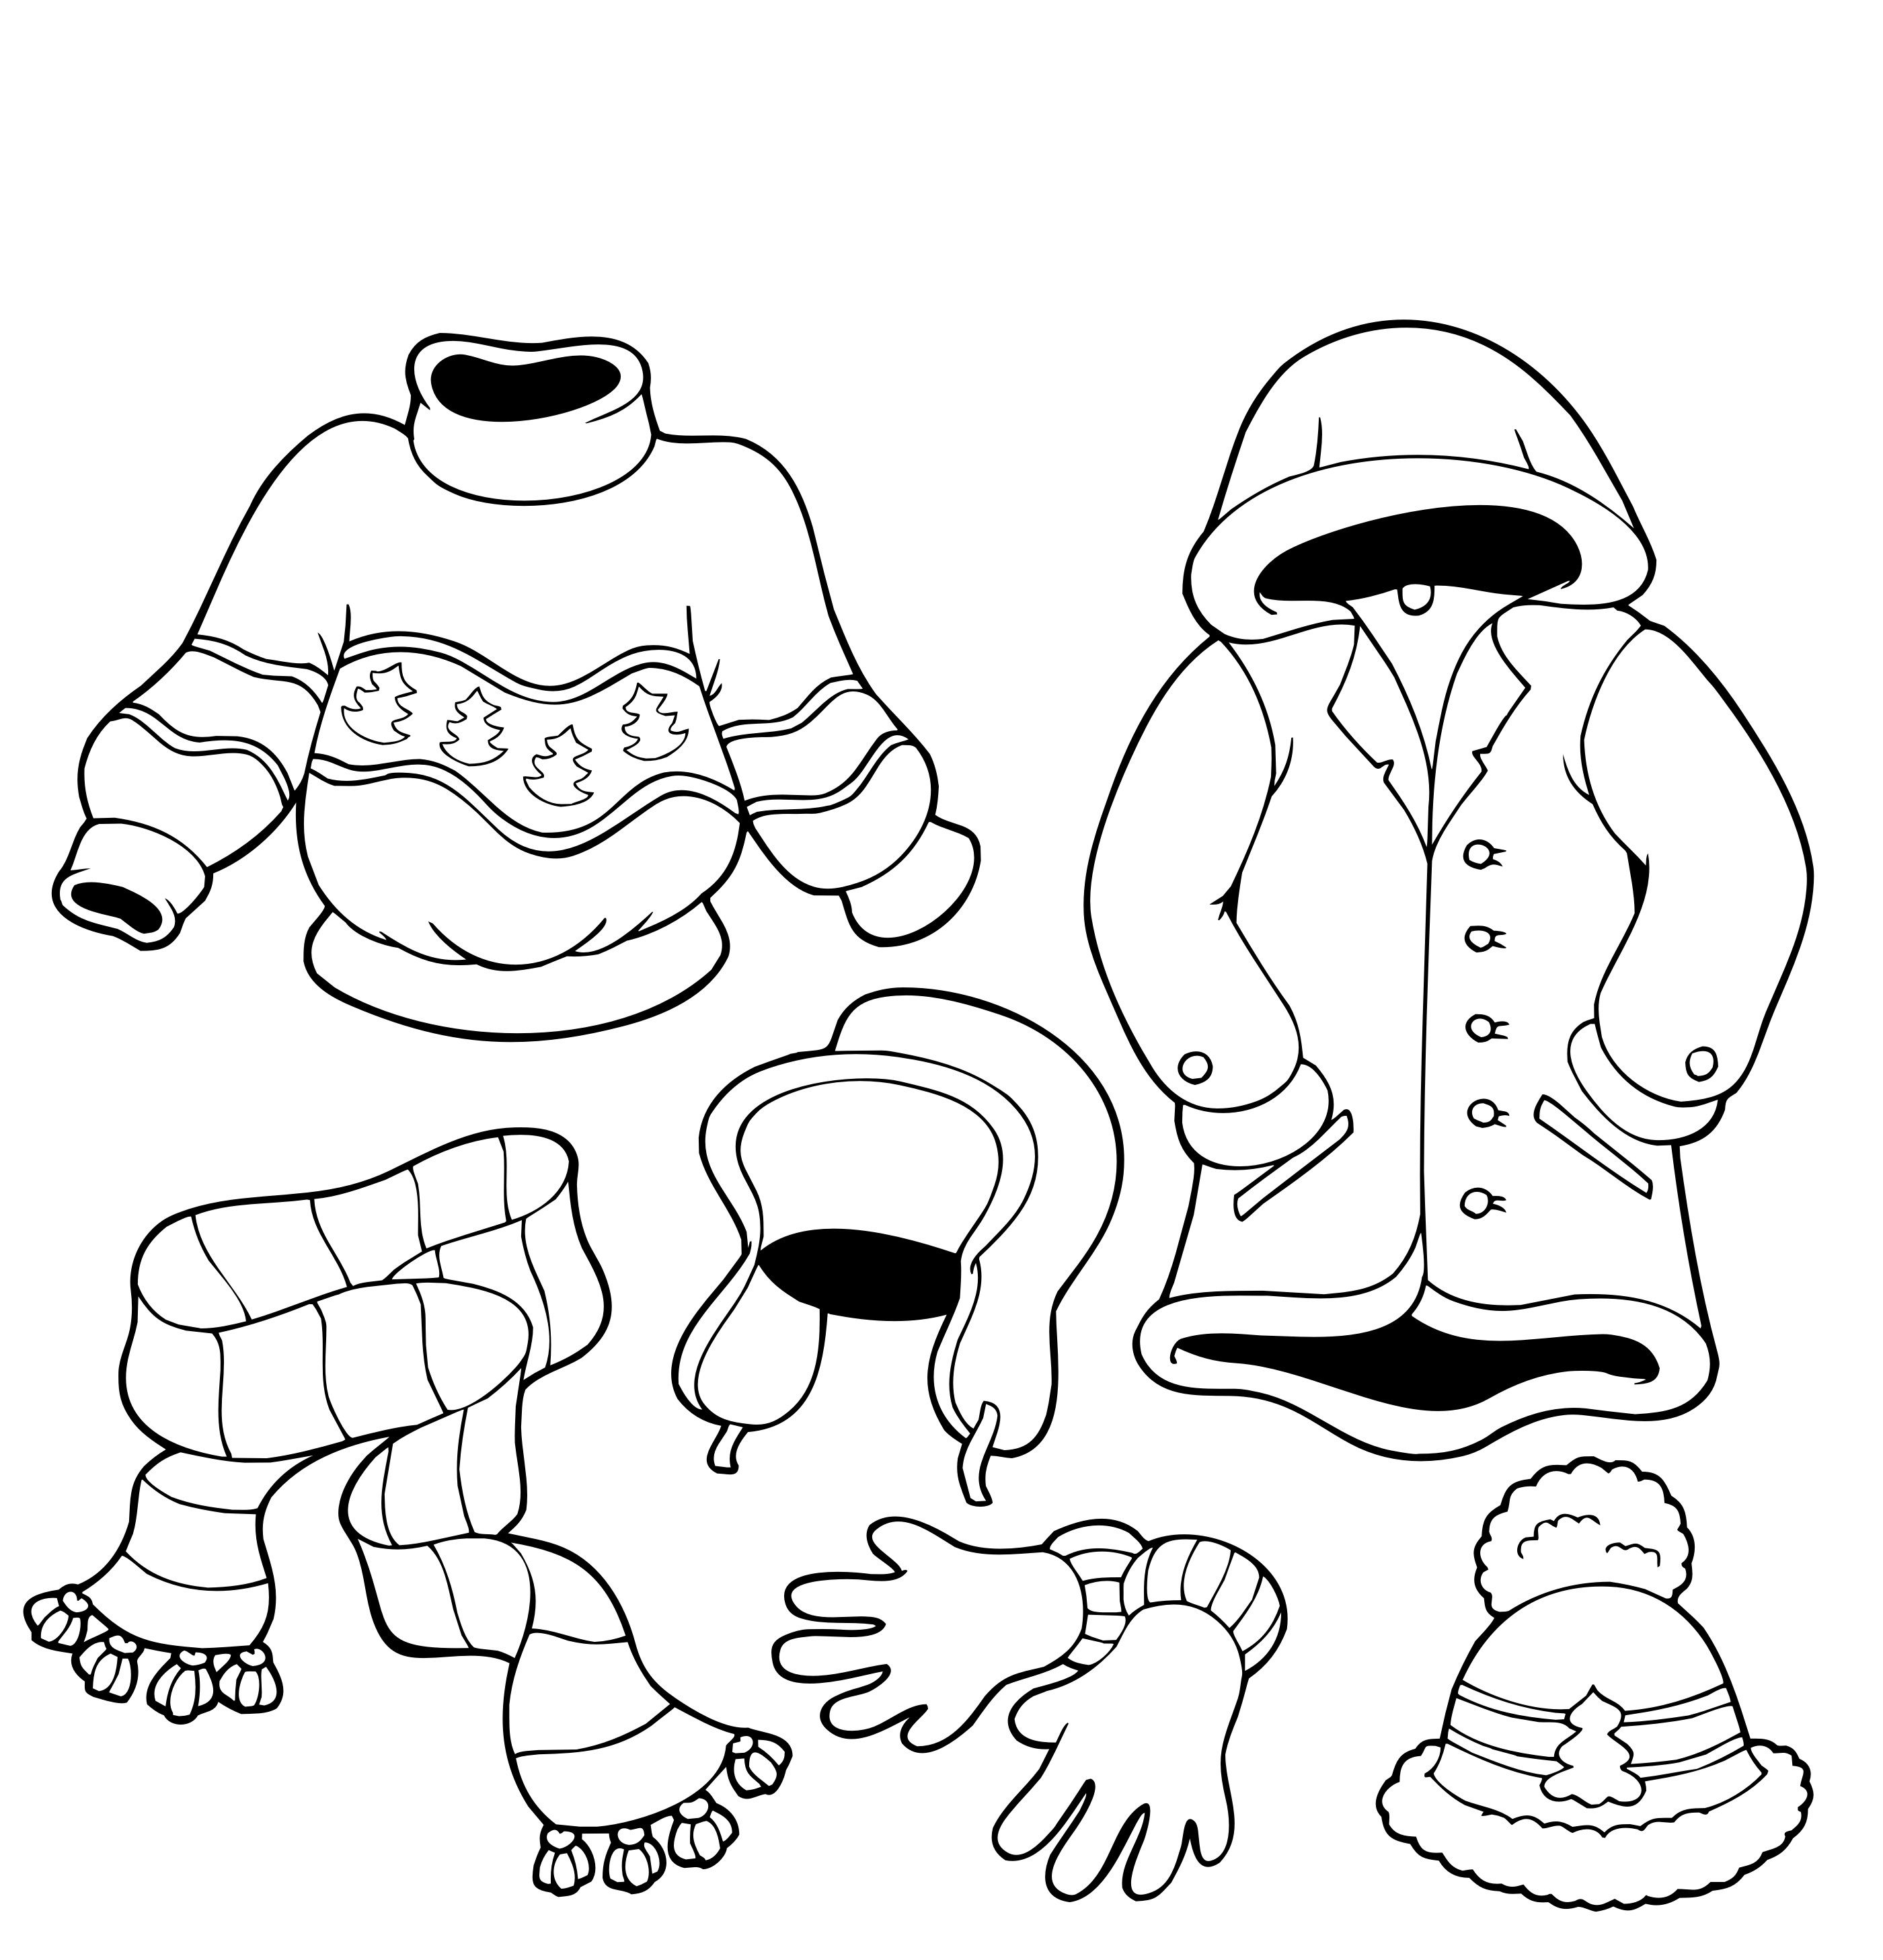 Childrens winter colouring pages - Winter Clothes Coloring Sheet For Children Clothes Stations